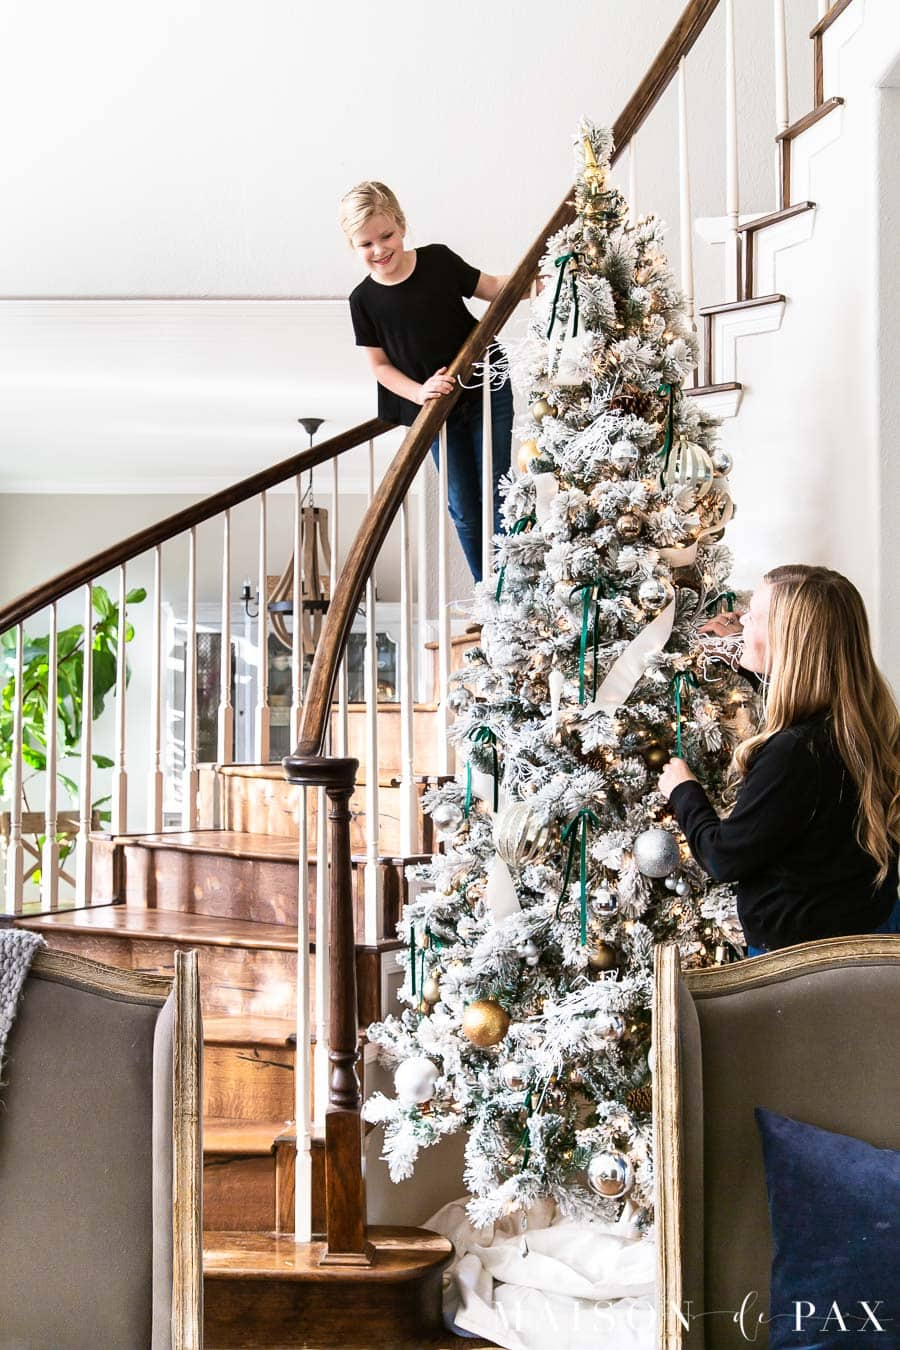 mother and daughter decorating large flocked Christmas tree in stairwell | Maison de Pax